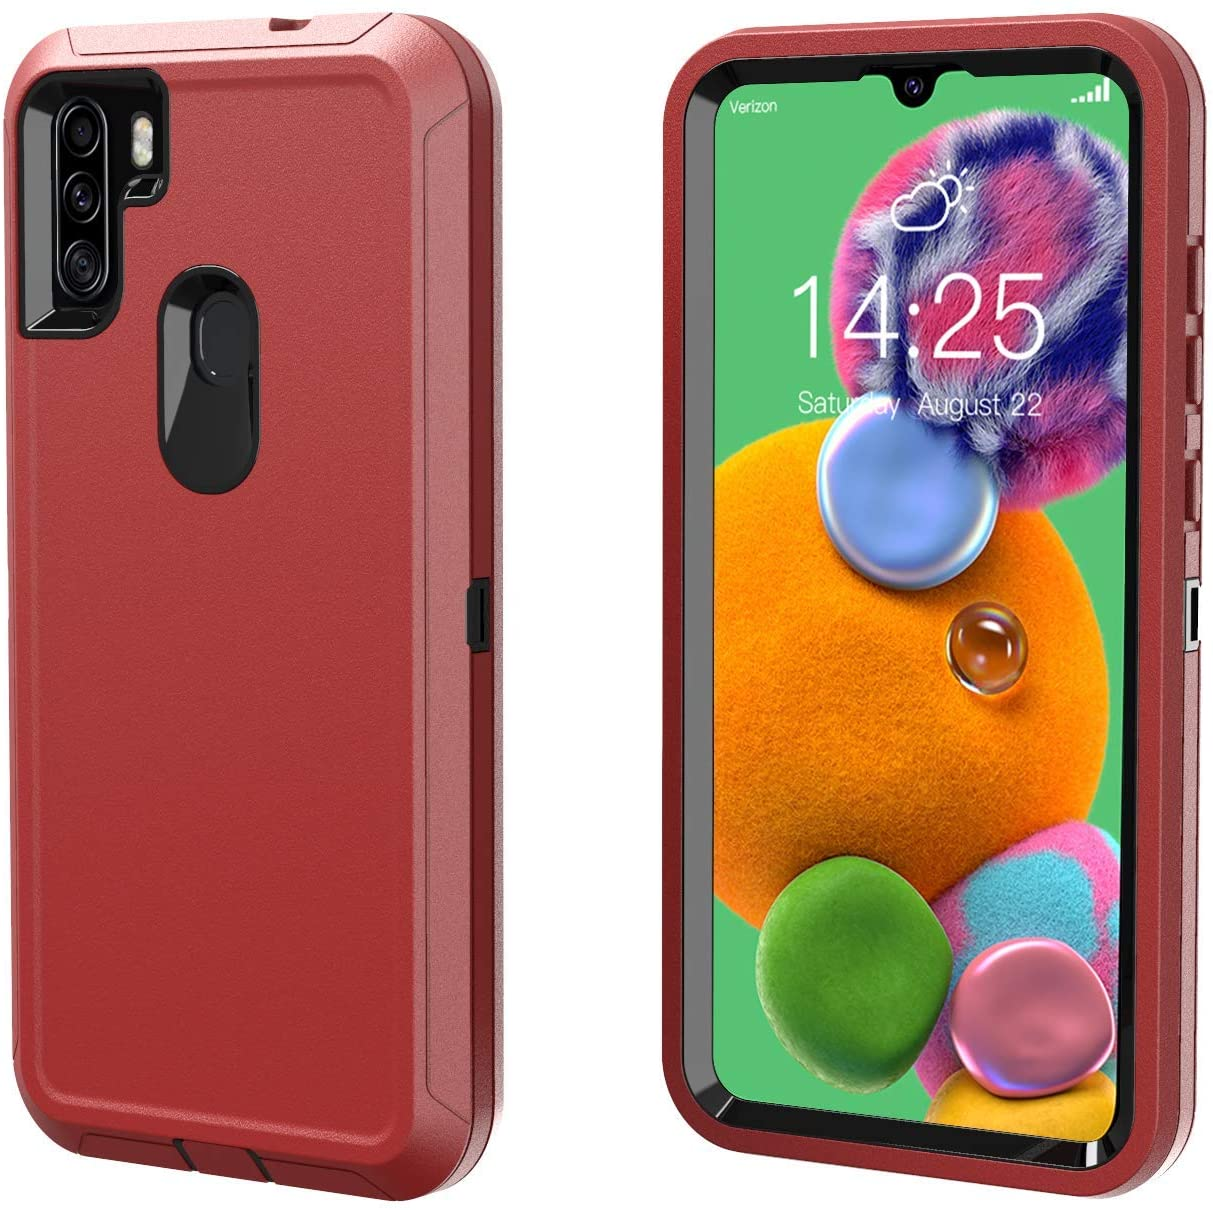 Phone Case for Galaxy A11- Dual Layer Full Body Shockproof High Impact Protective Hard Plastic Soft TPU with Tough Phone Cover Cases for Samsung A11 Case (Red)